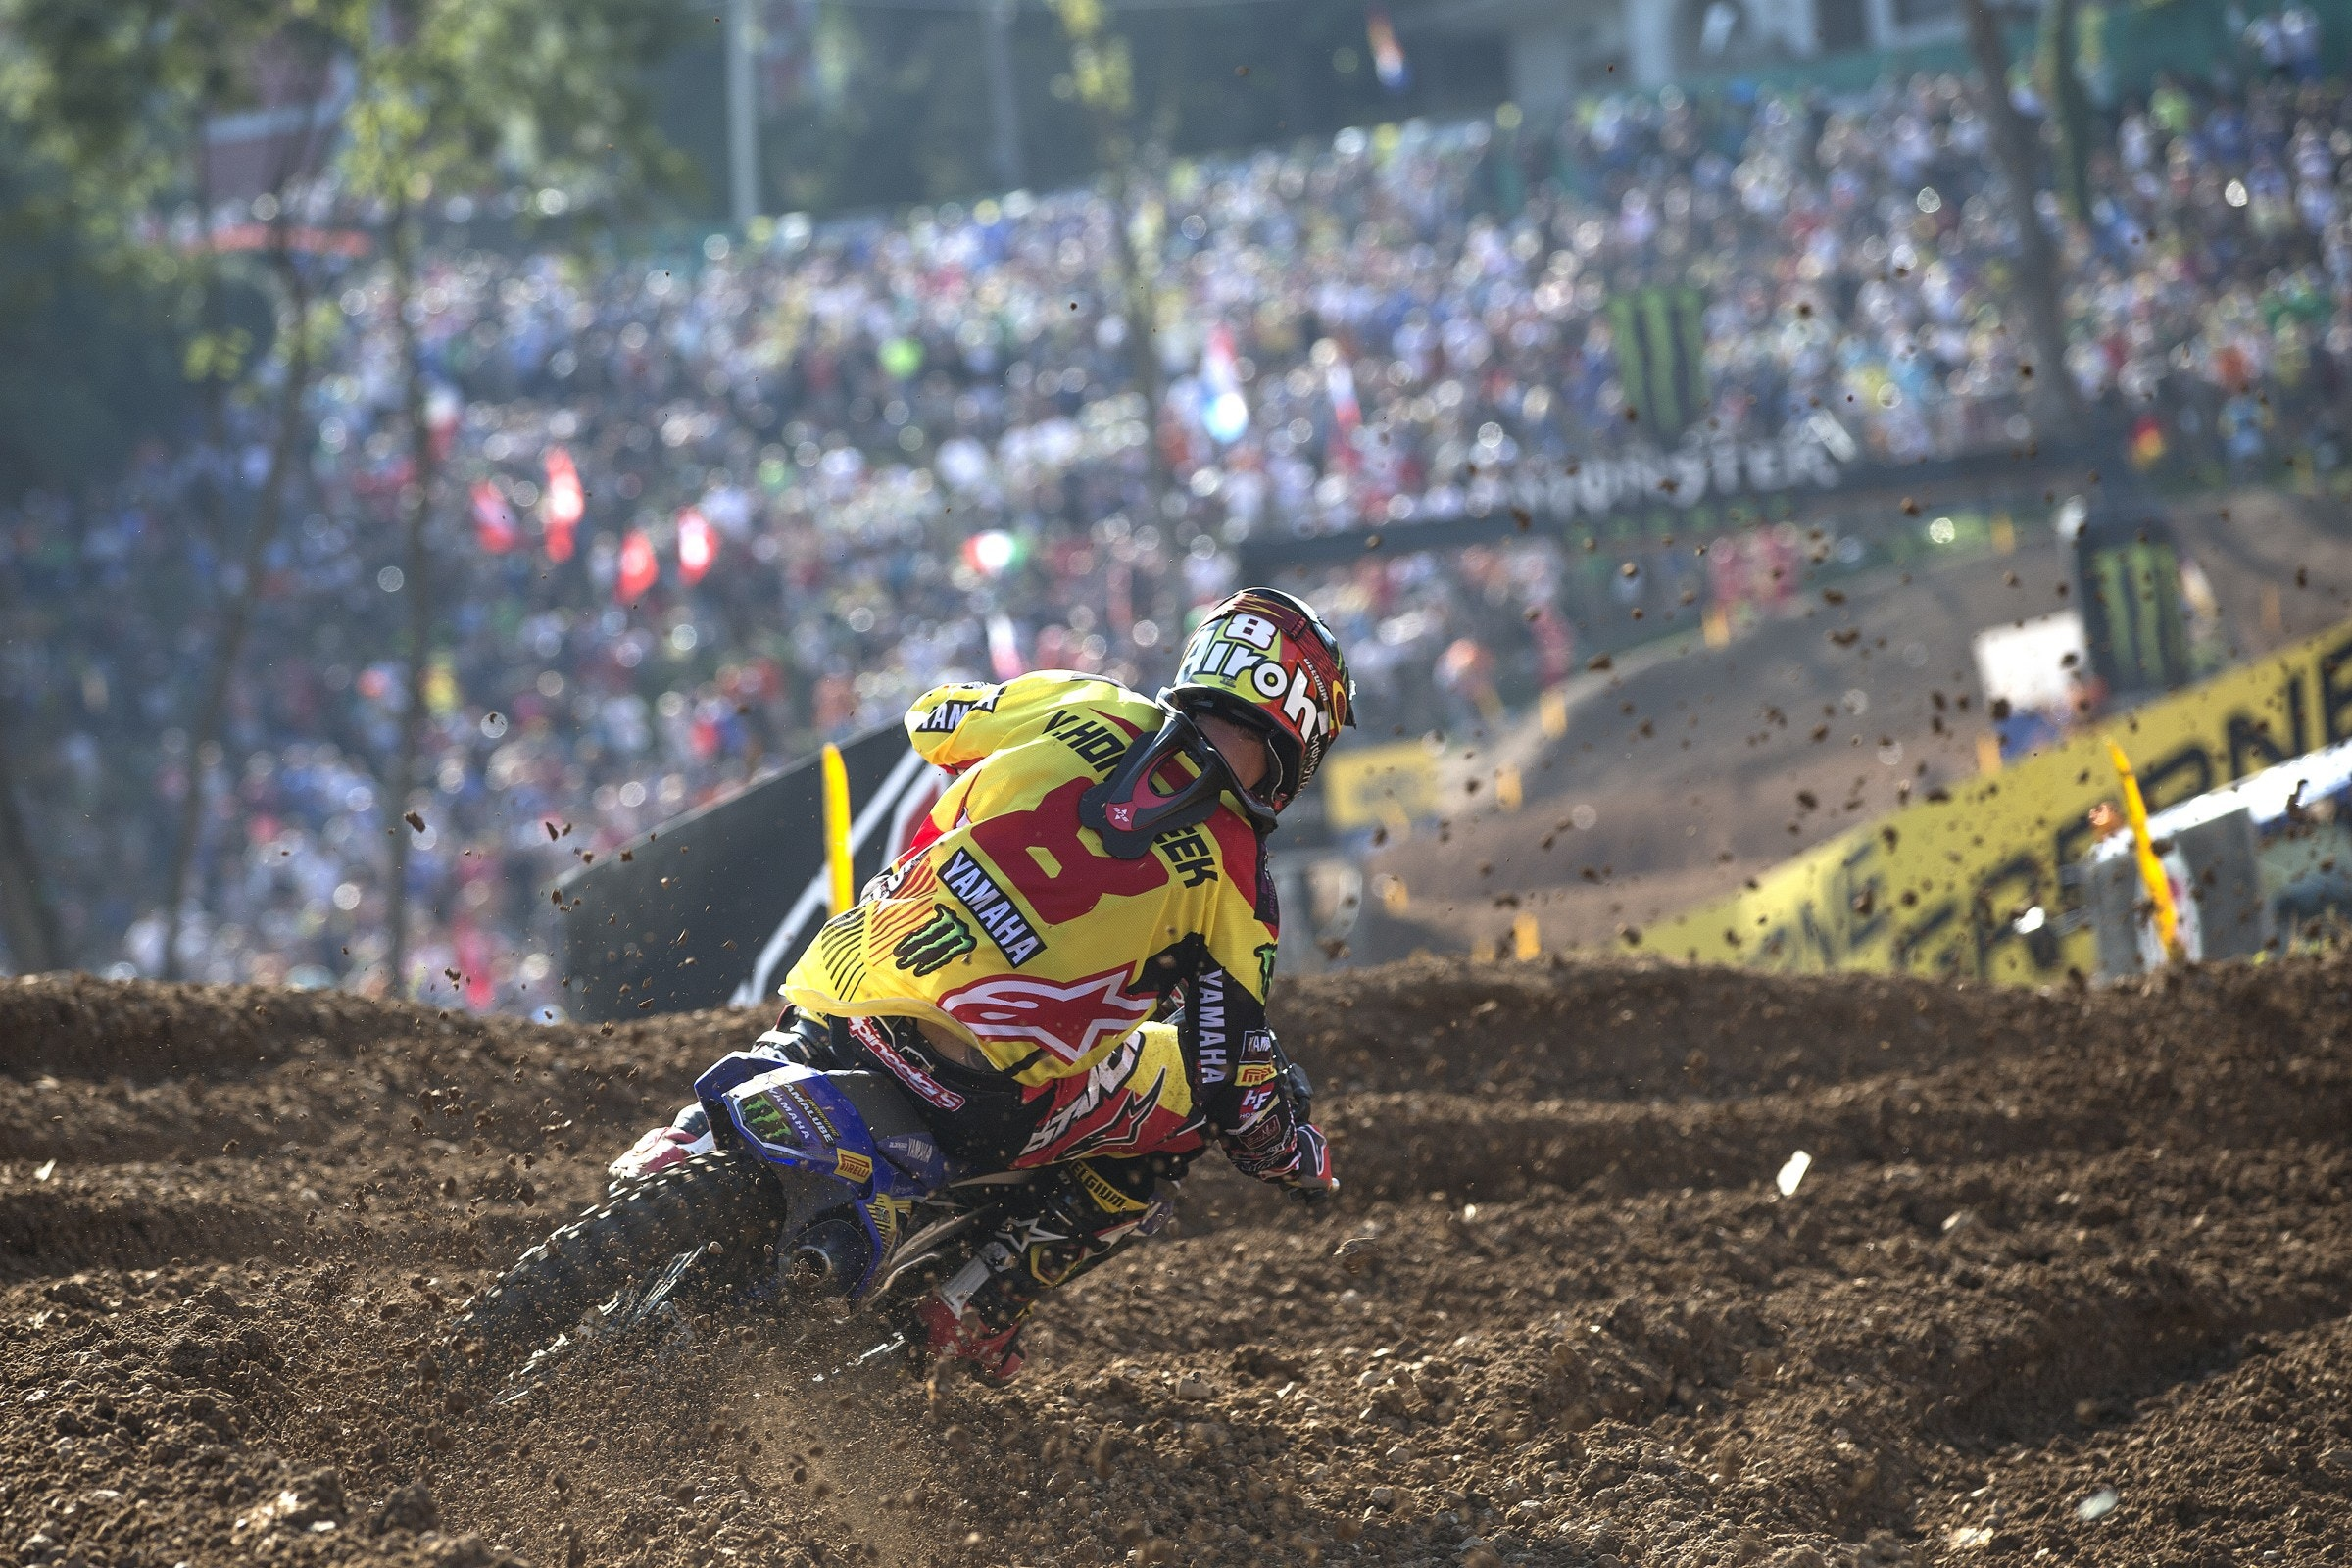 Belgium opted to give Van Horebeek the better of their two gate picks.